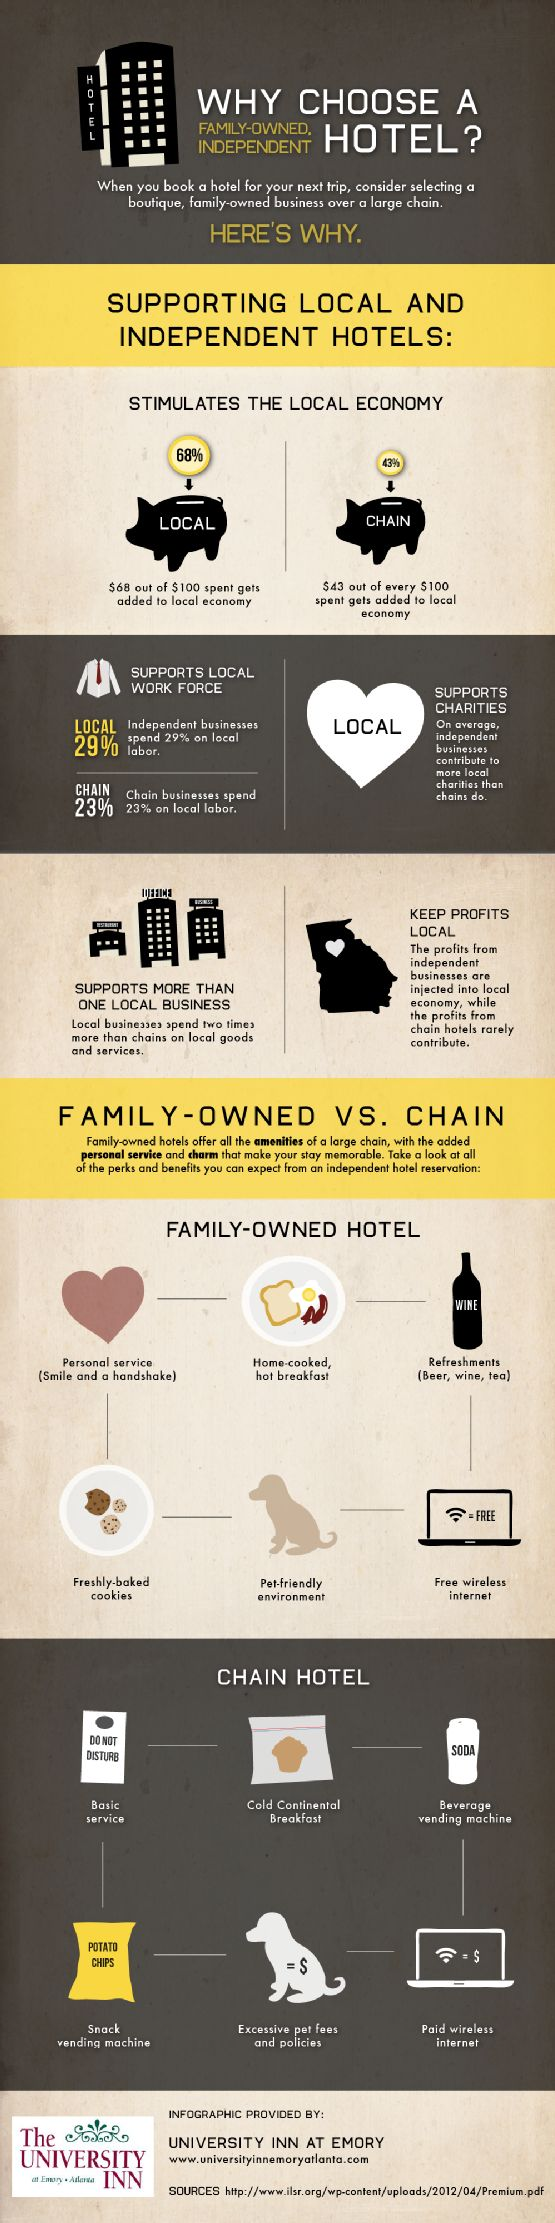 The majority of money made in local family-owned hotels is put back into the economy. Sadly, this isn't true for chain businesses! Look at this info